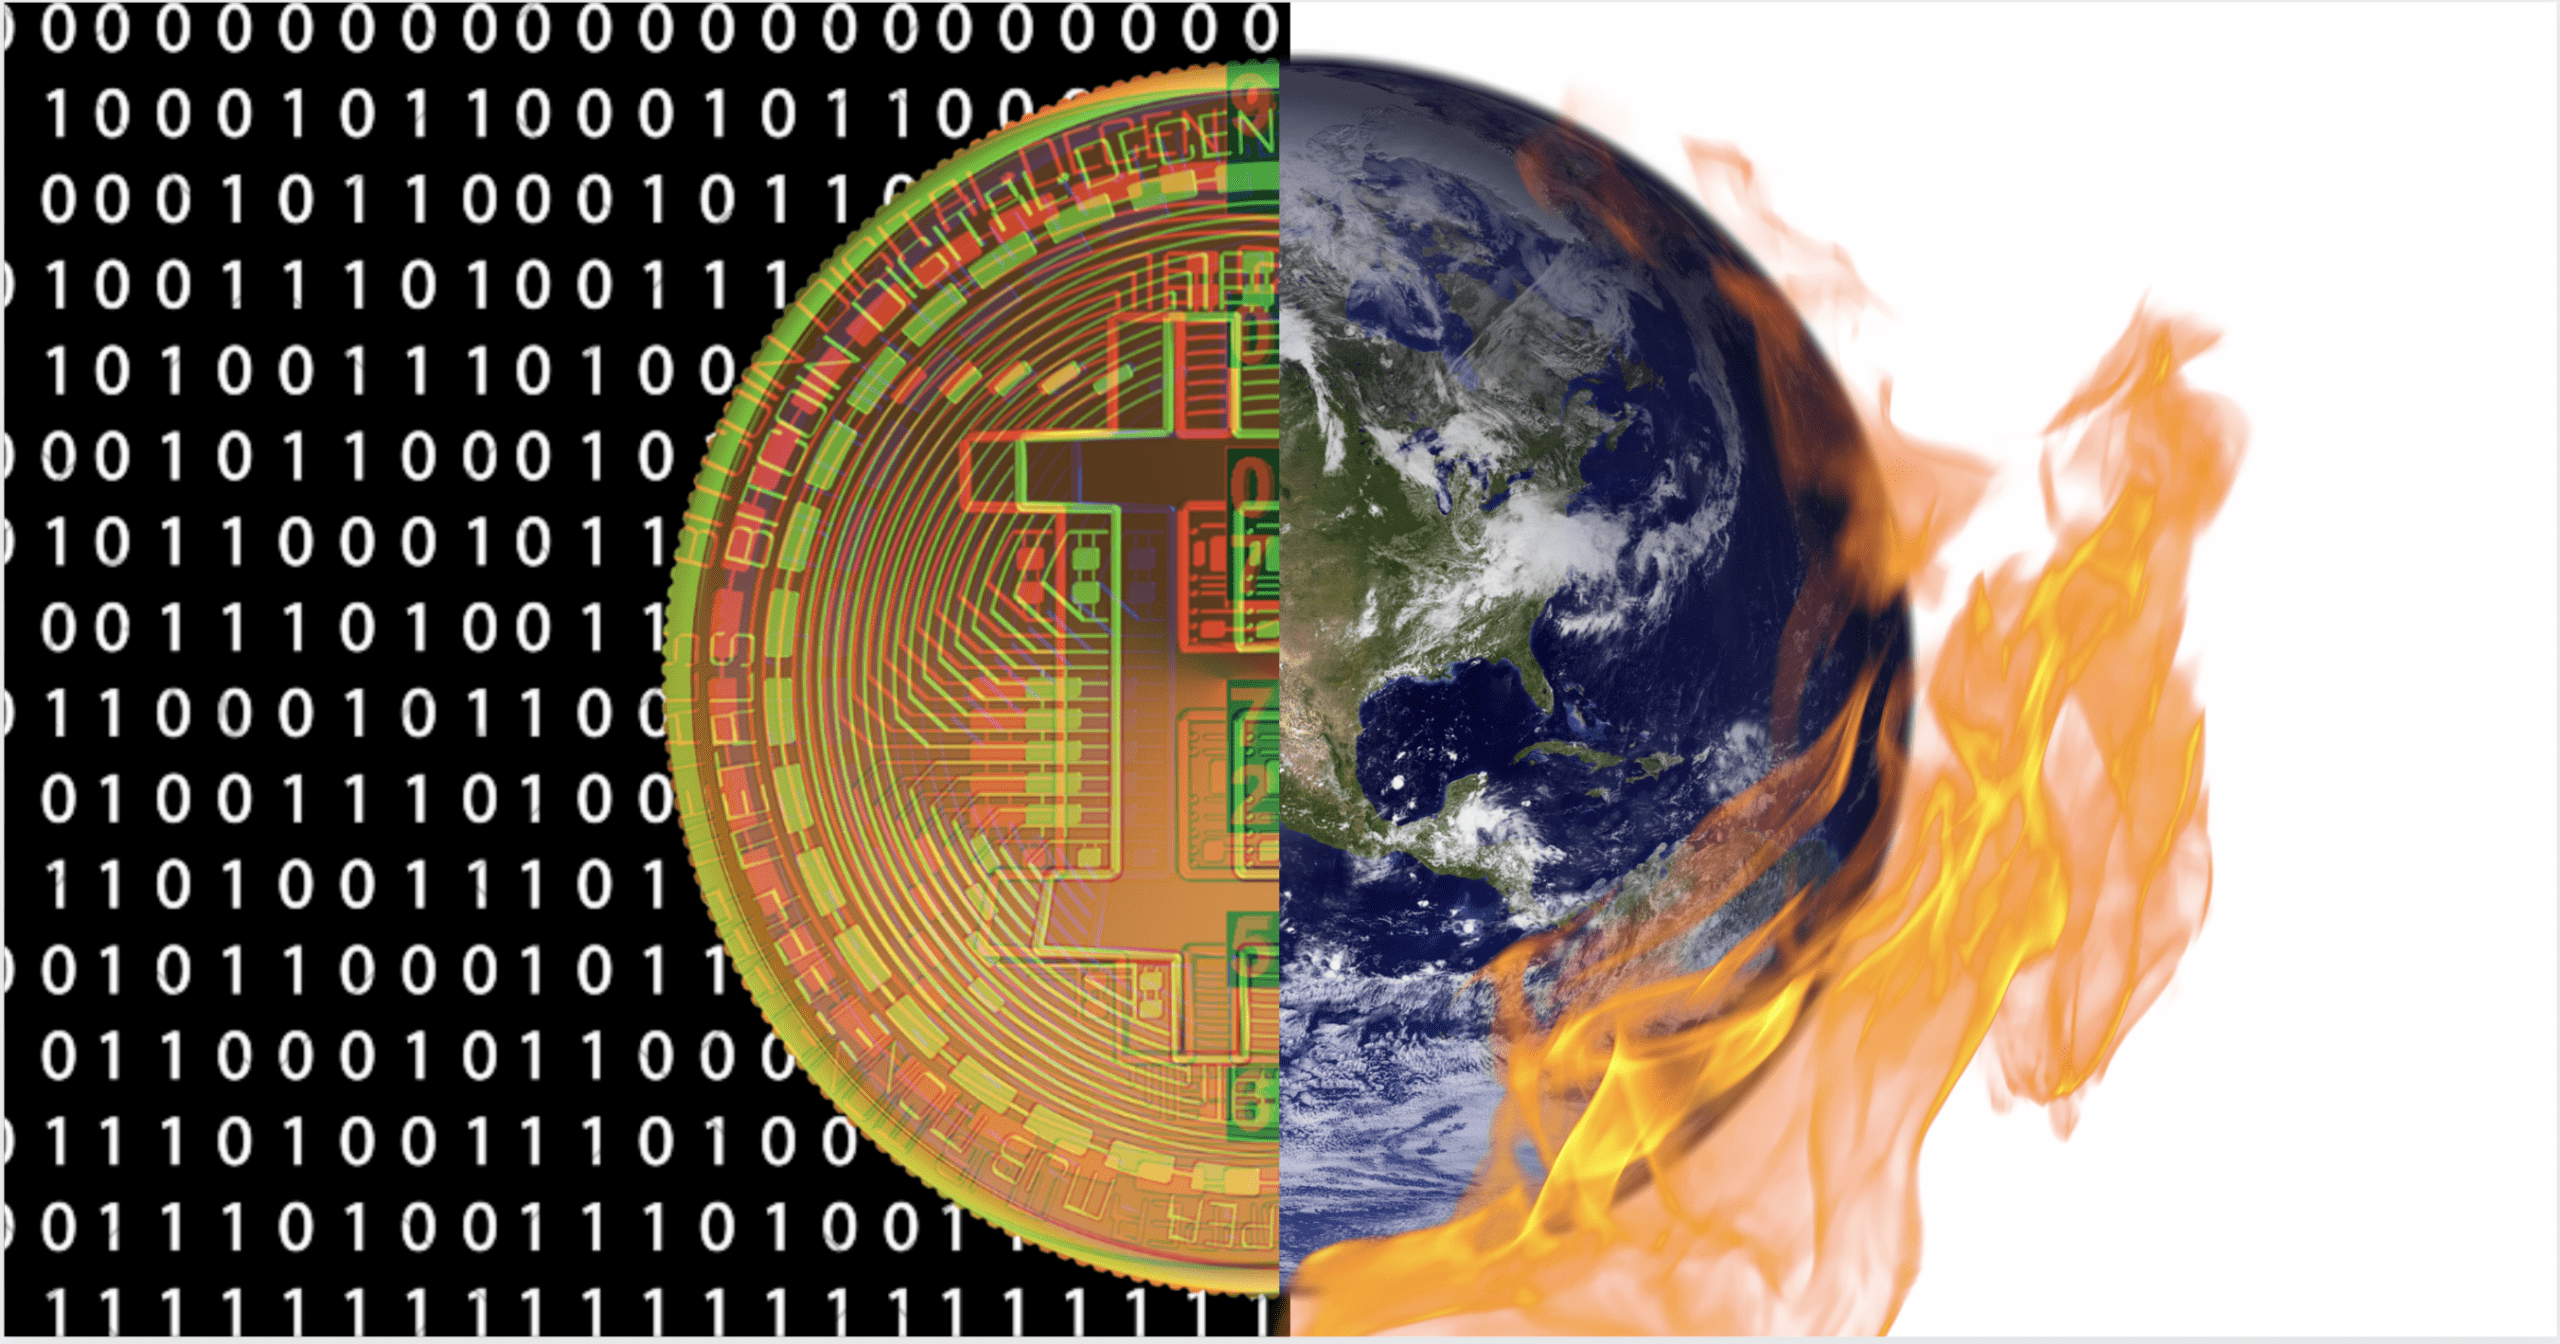 Bitcoin cryptocurrency and climate change with world on fire